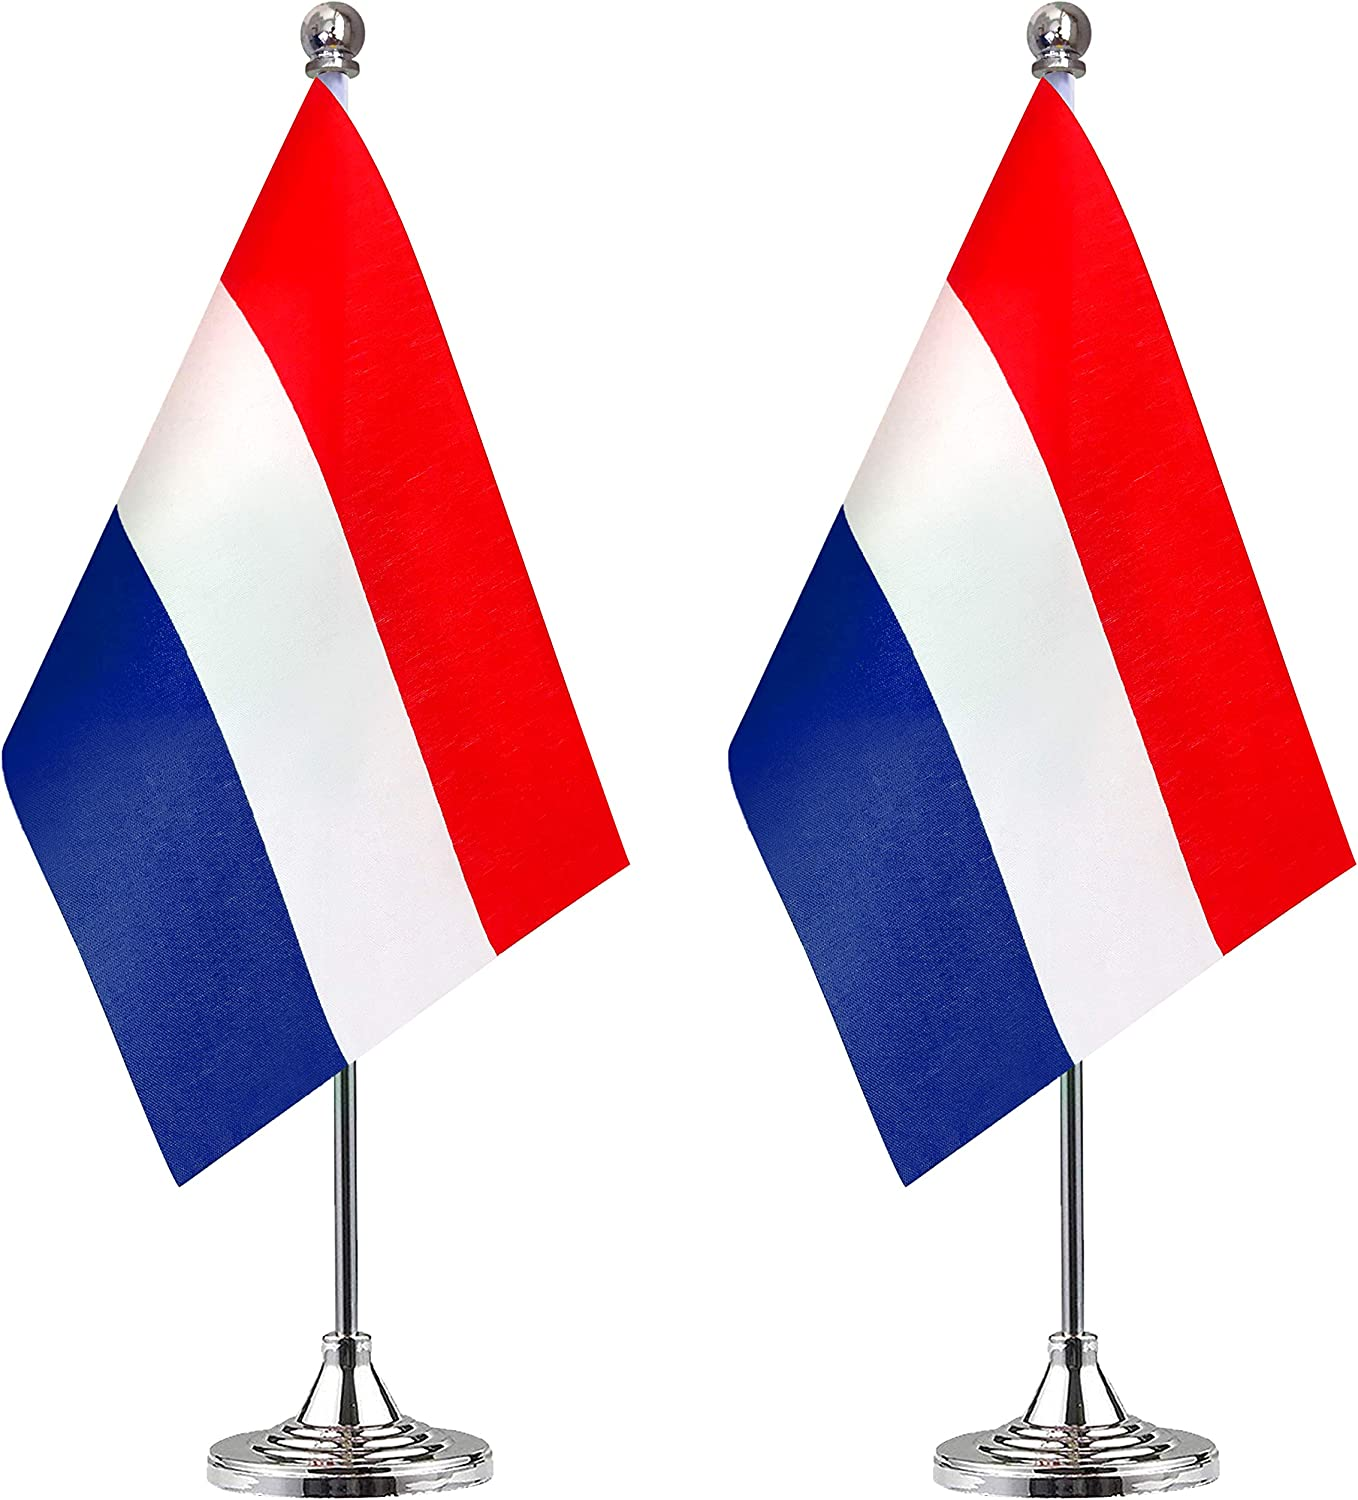 WEITBF Netherlands Desk Flag Small Mini Dutch Holland Office Table Flag with Stand Base,Dutch Holland Themed Party Decorations Celebration Event,2 Pack: Garden & Outdoor